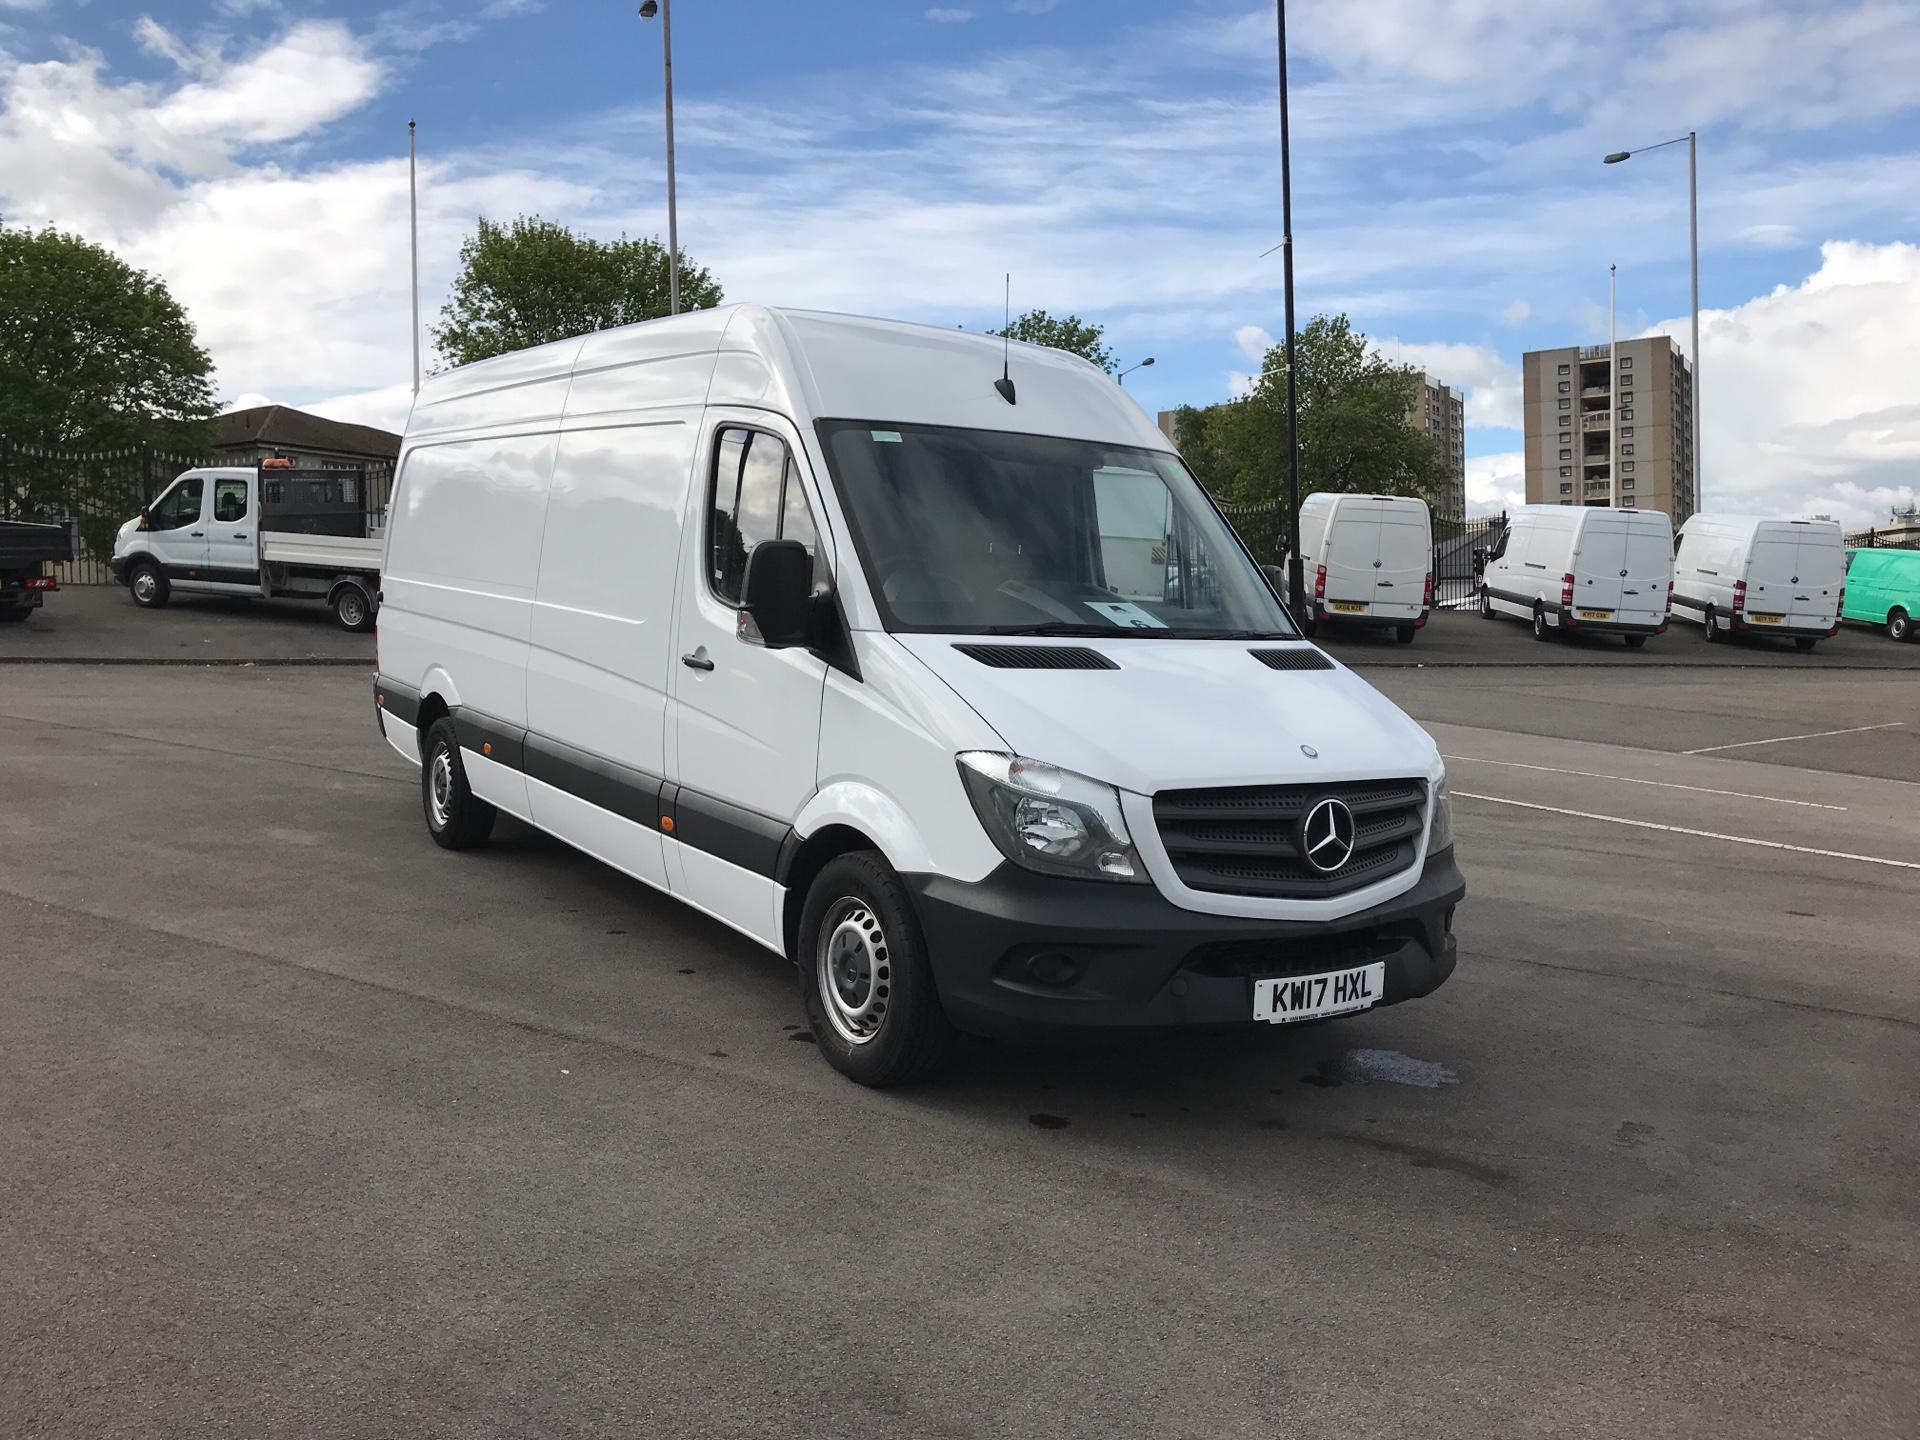 2017 Mercedes-Benz Sprinter 3.5T High Roof Van (KW17HXL)